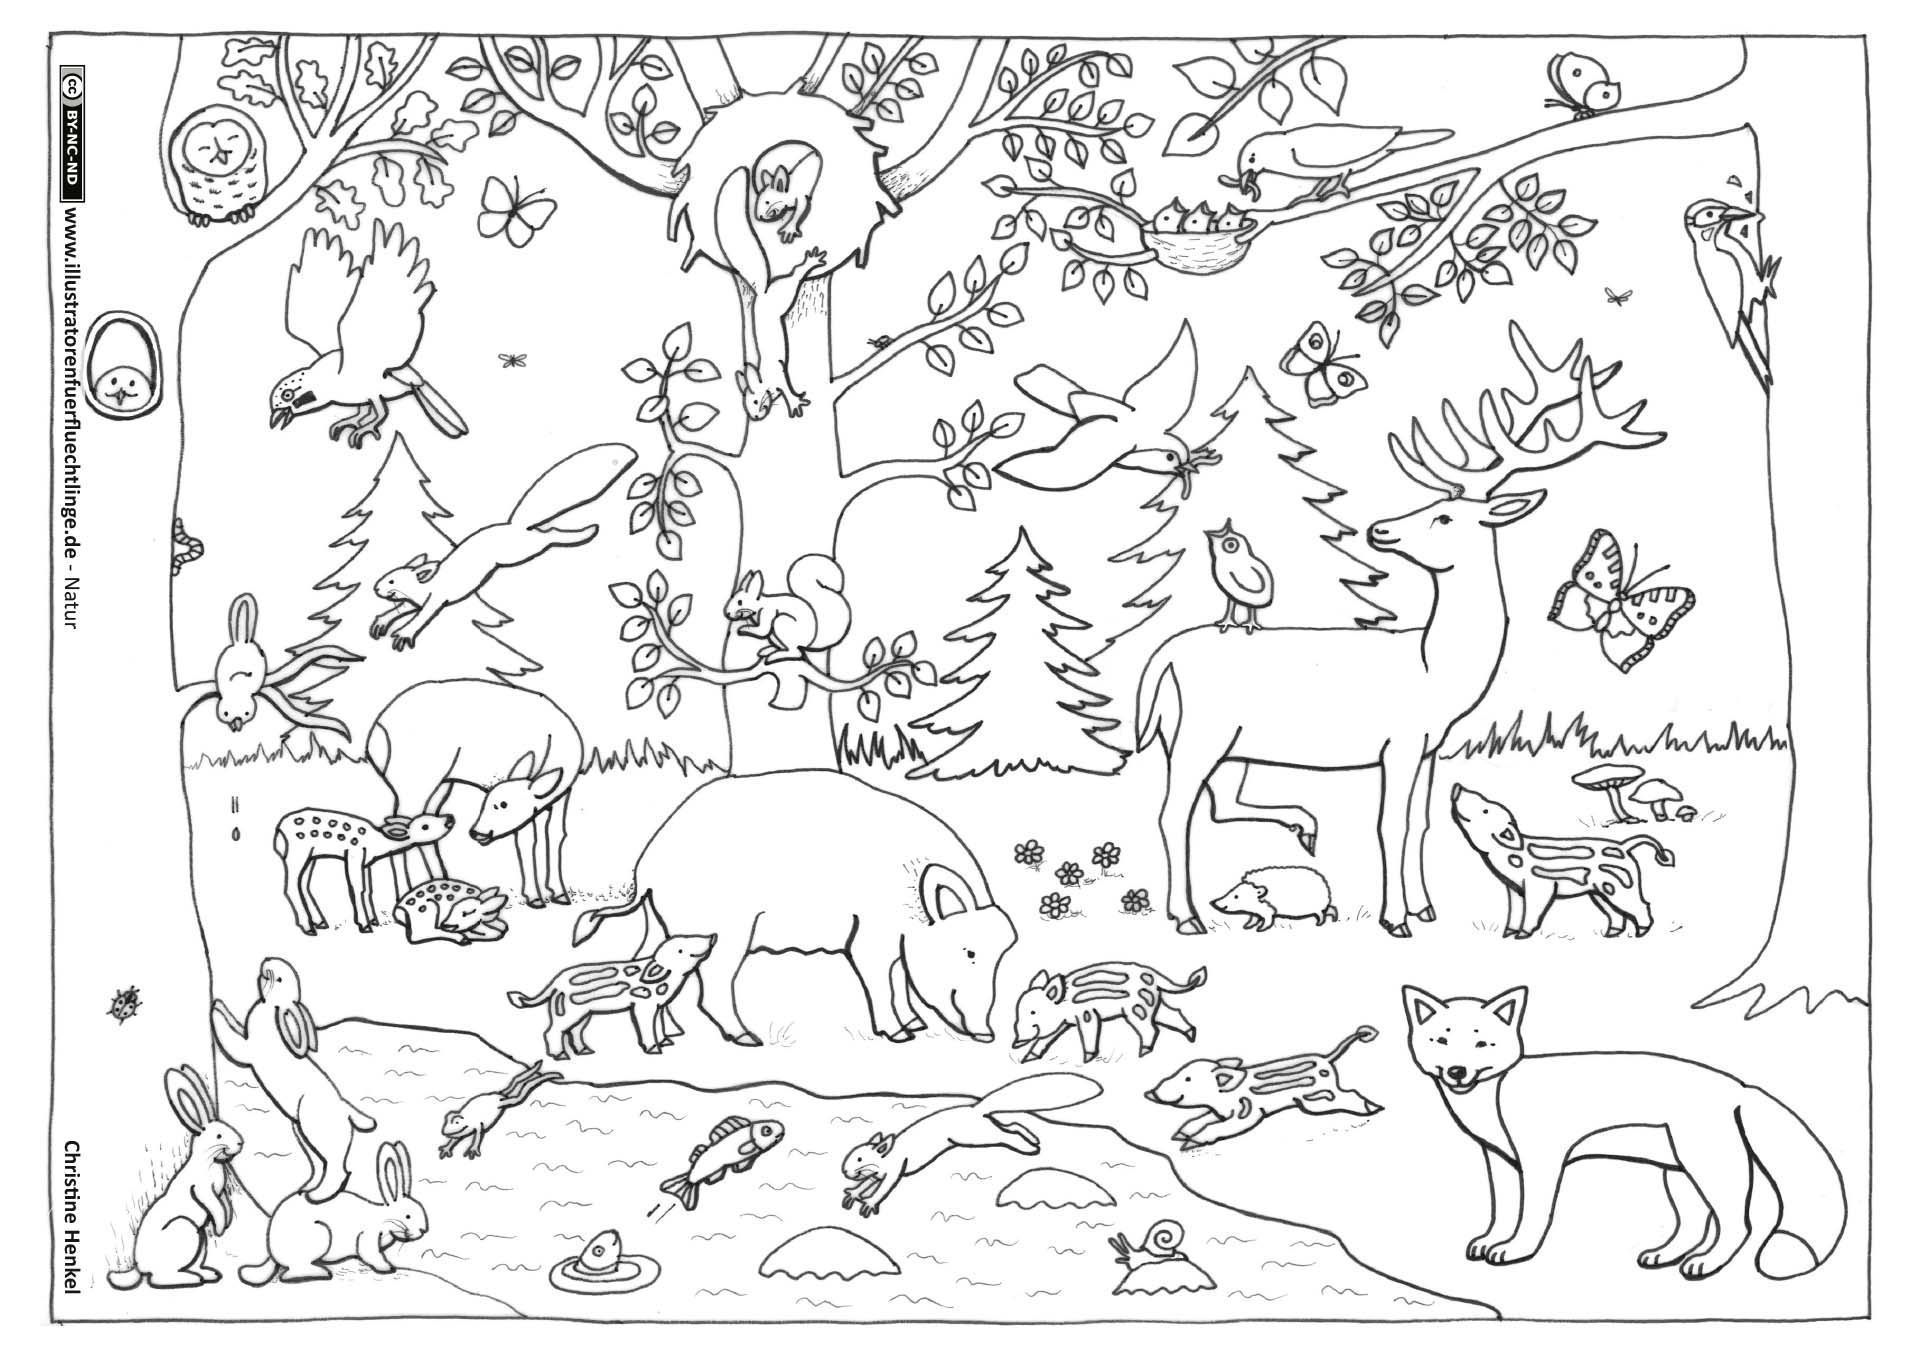 coloring pages of nature and animals nature scenes drawing at getdrawings free download coloring of nature and pages animals